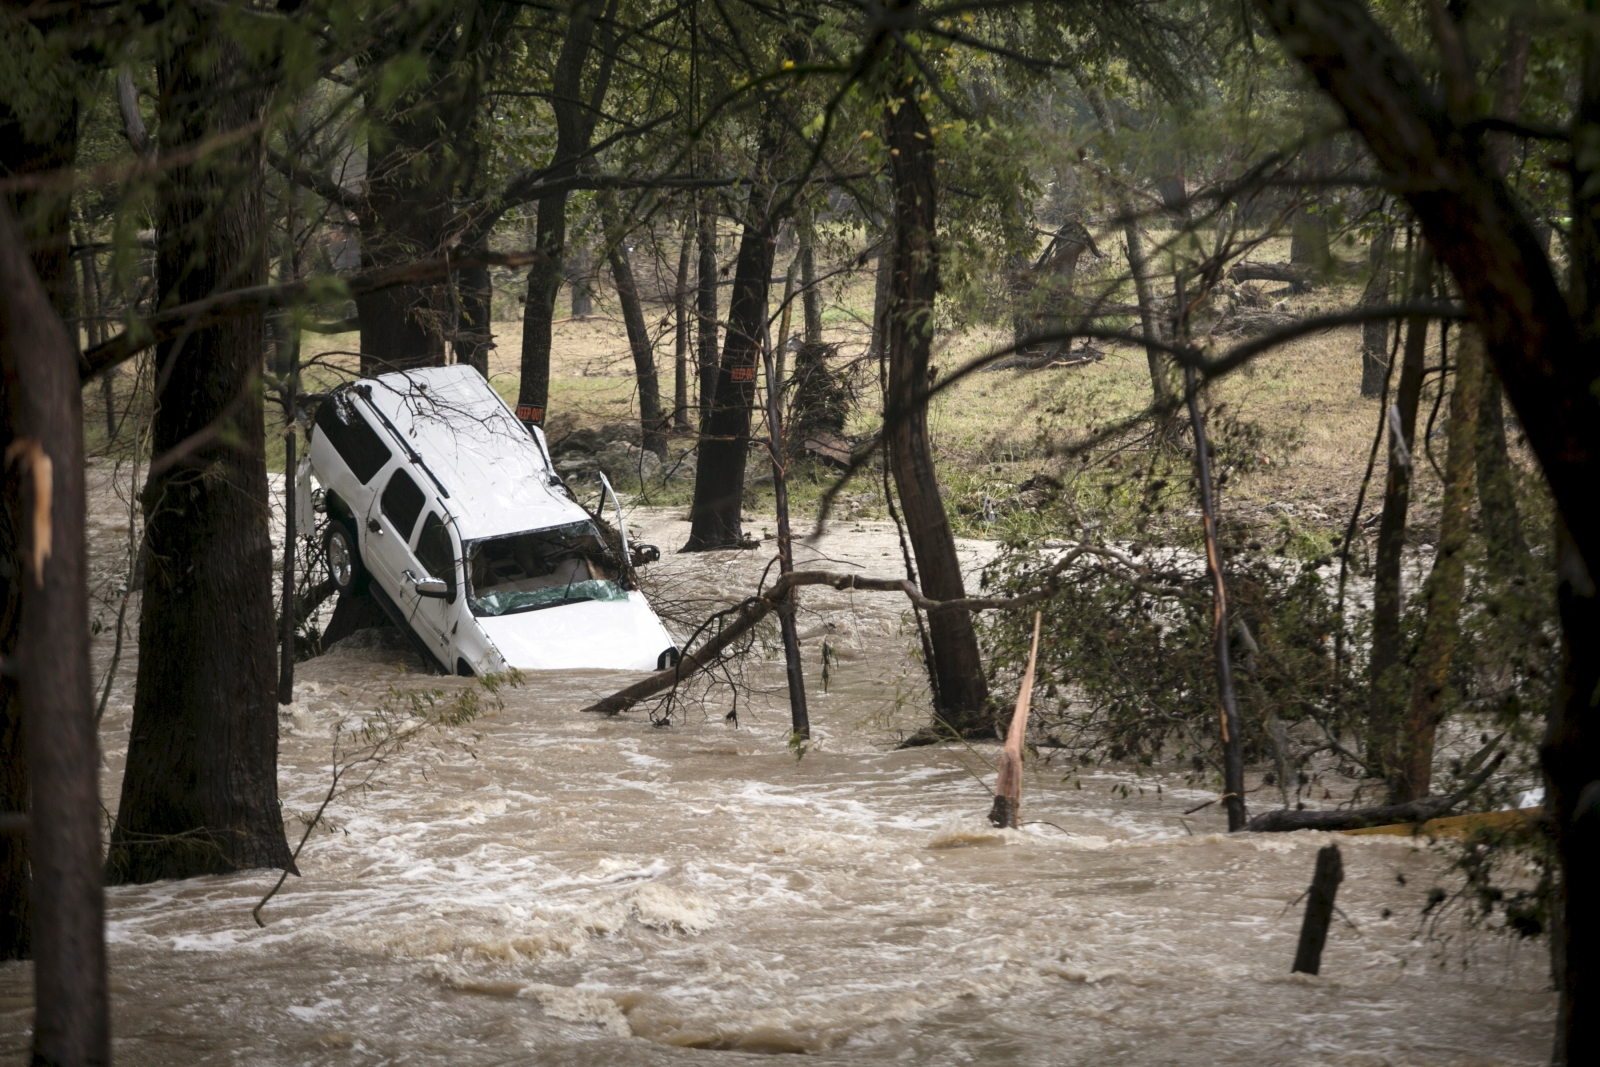 A car car is washed up against a tree in Cyprus Creek